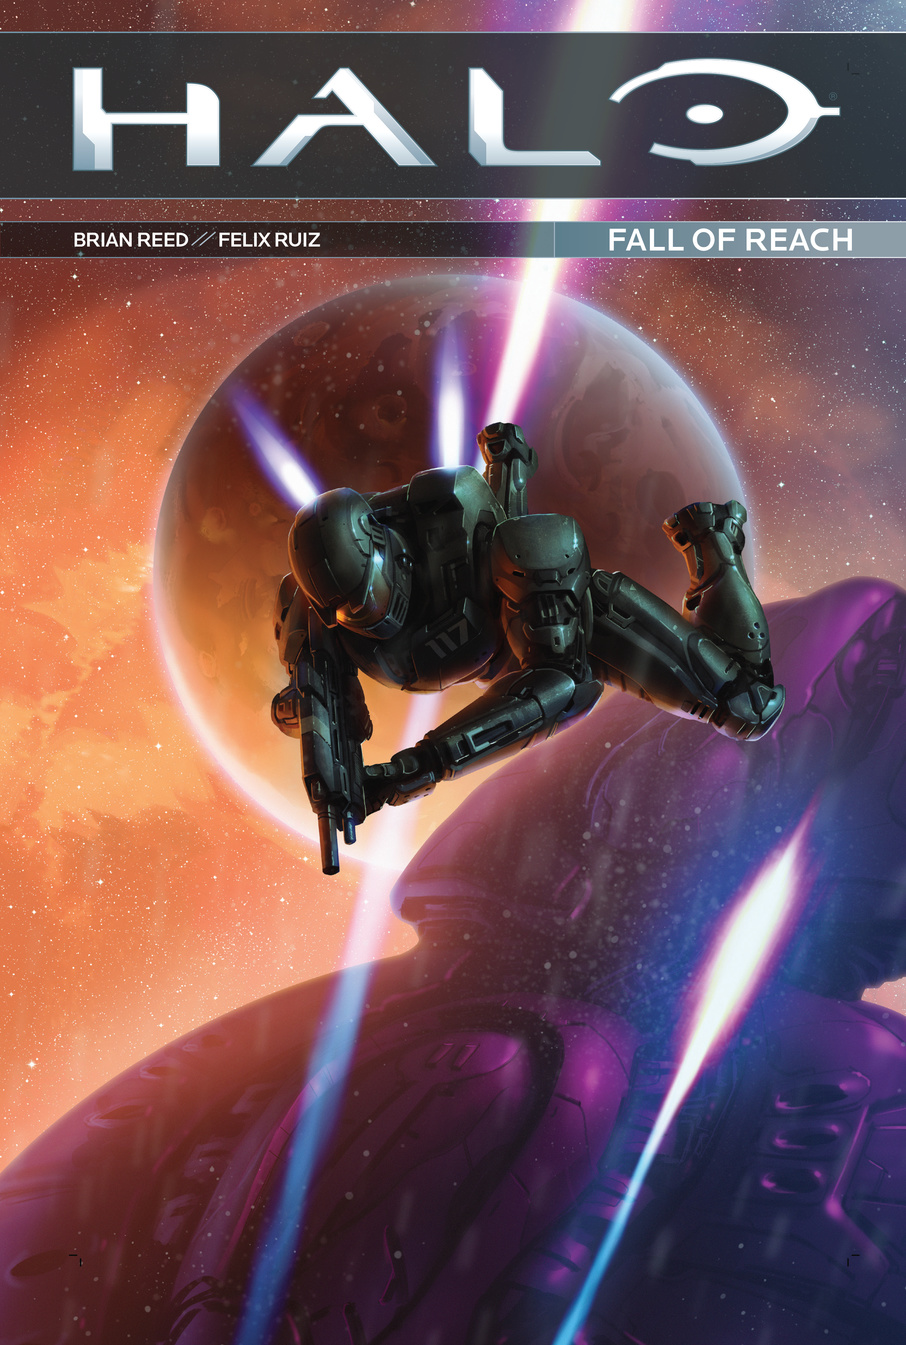 spencer calculating human resource costs & benef its cutting costs & increasing productivity Halo: Fall of Reach